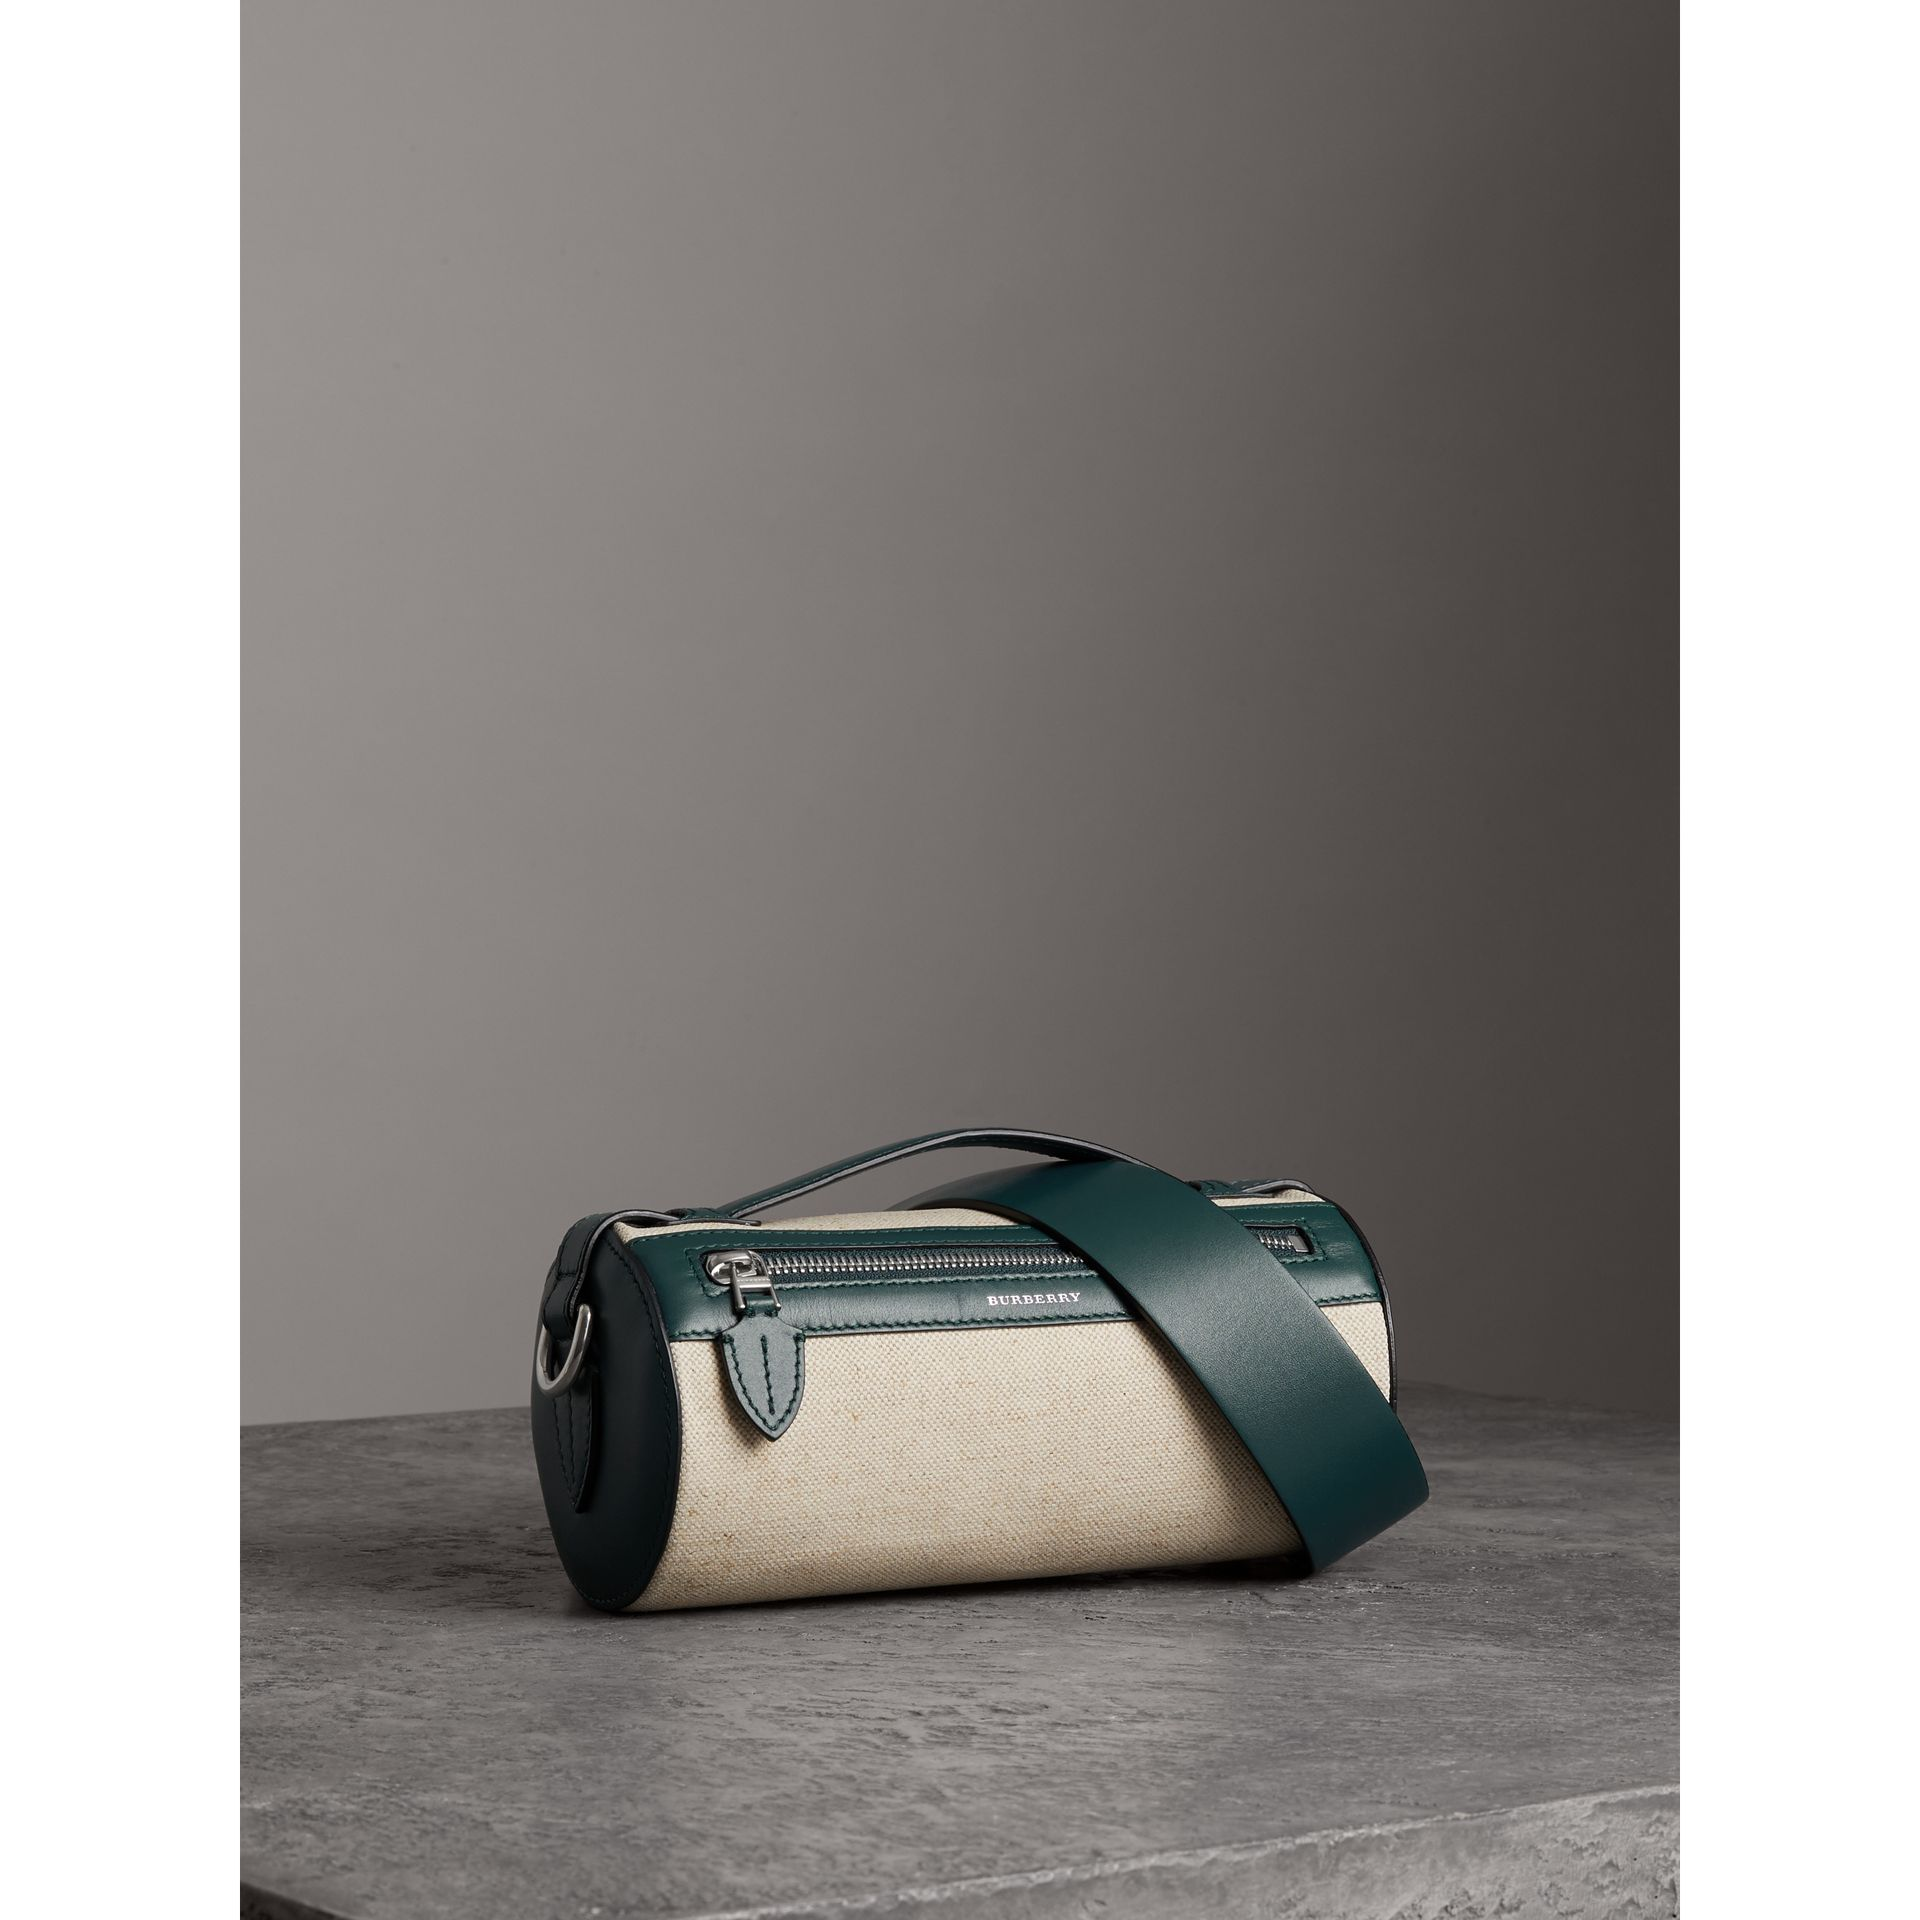 Sac The Barrel en cuir, coton et lin (Cyan Foncé) - Femme | Burberry - photo de la galerie 3